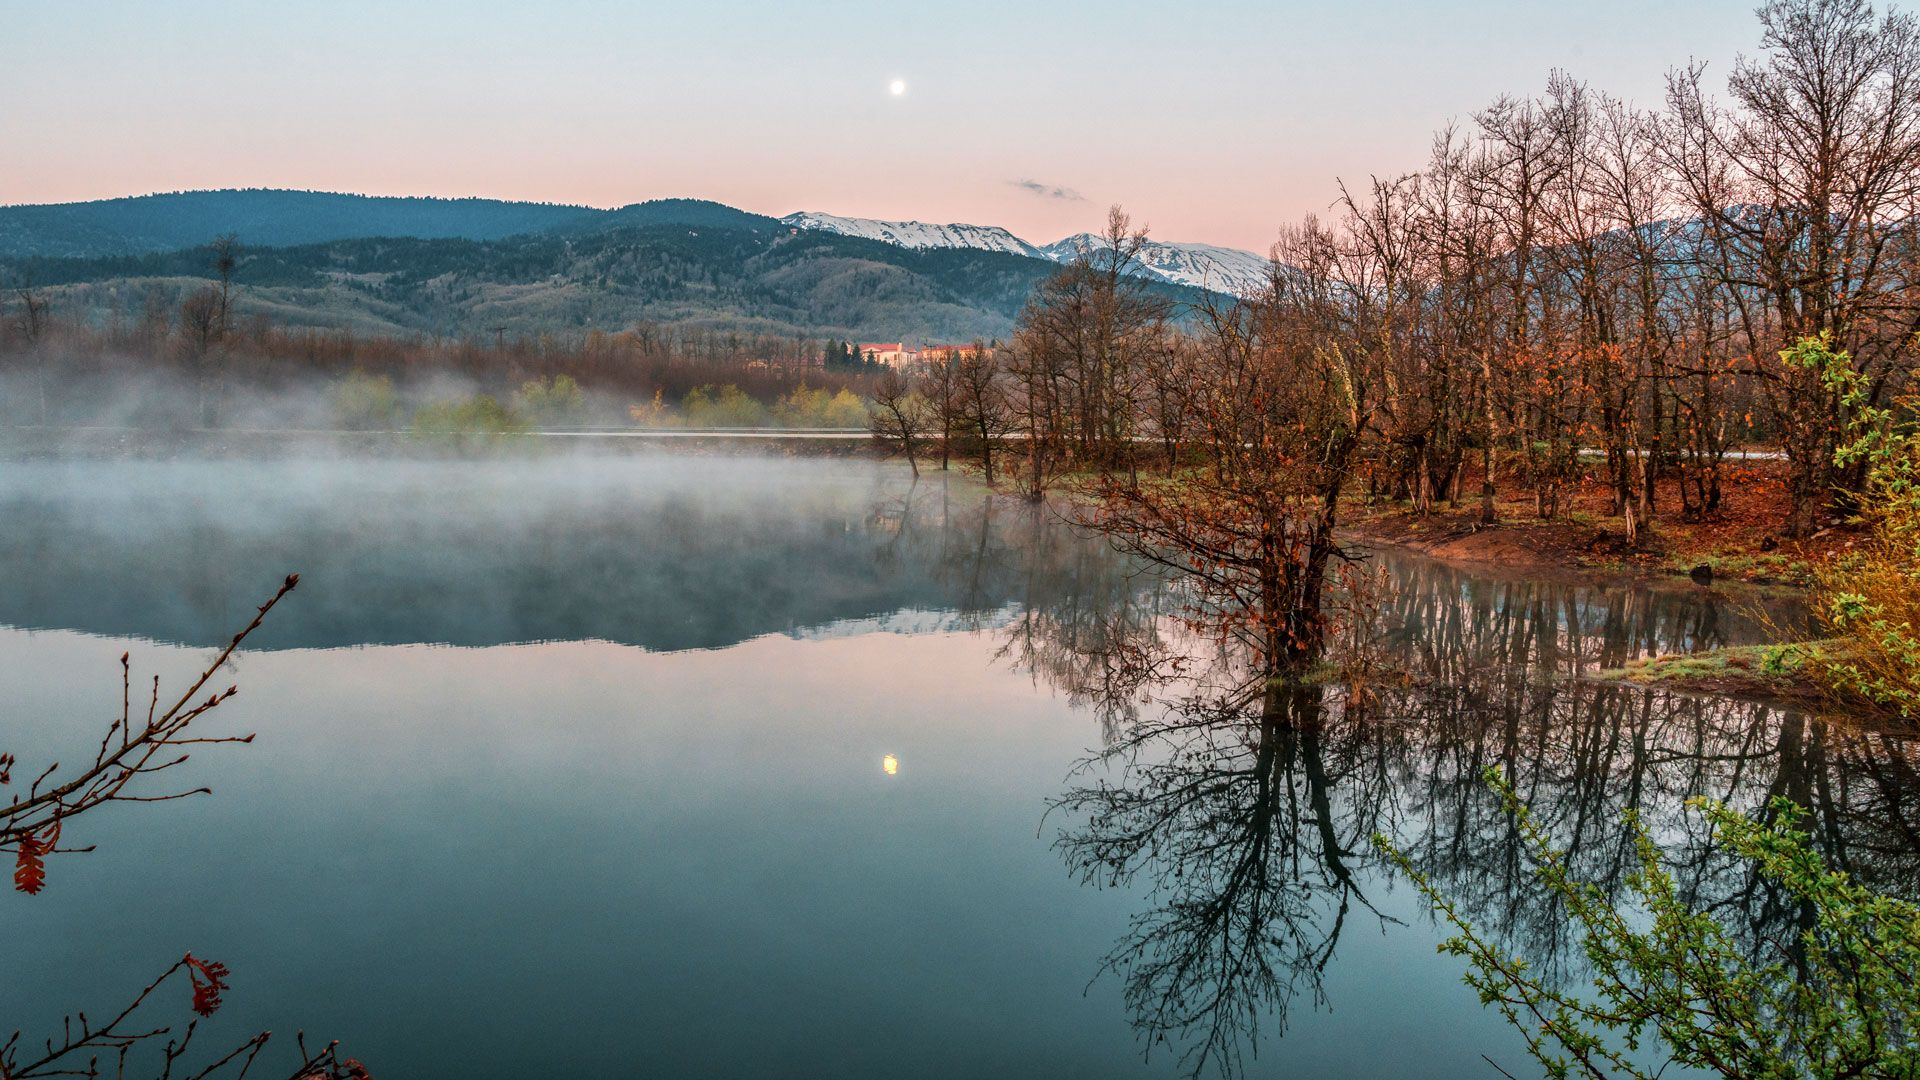 Sunrise on Lake Plastira in Karditsa Region